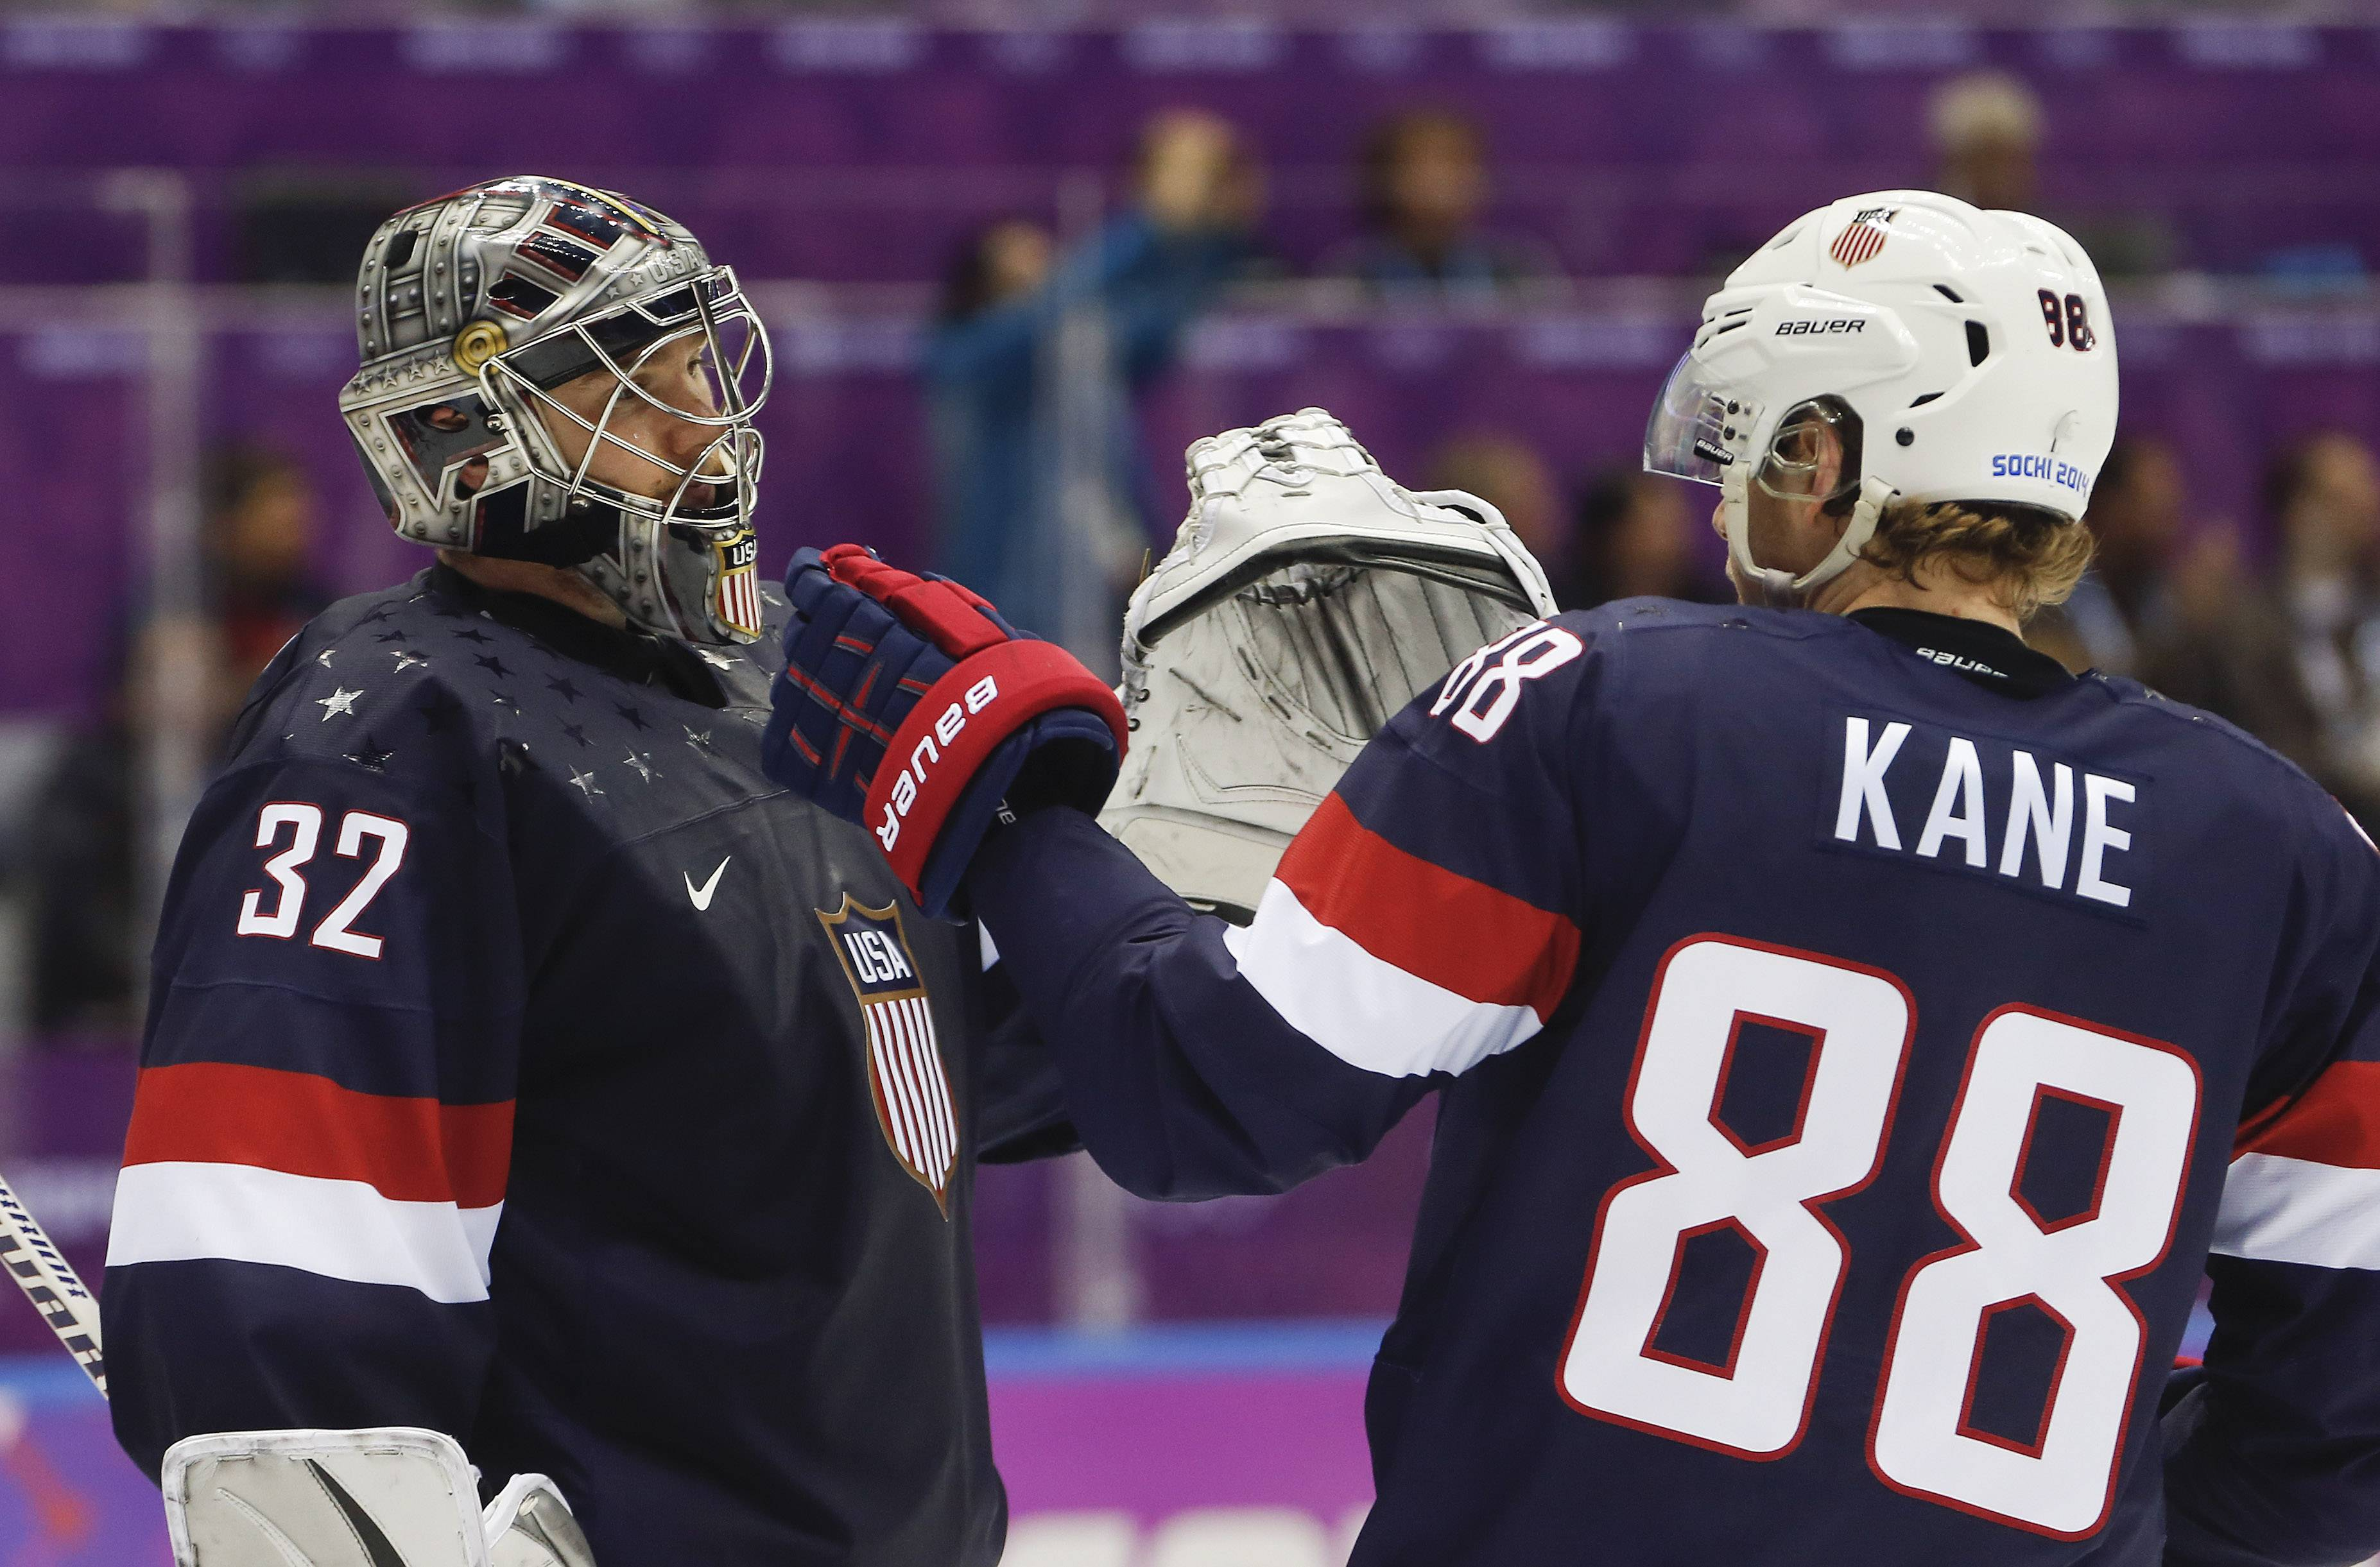 Blackhawk Patrick Kane, right, greets USA goaltender Jonathan Quick after Finland won 5-0 in the men's bronze medal ice hockey game Saturday.